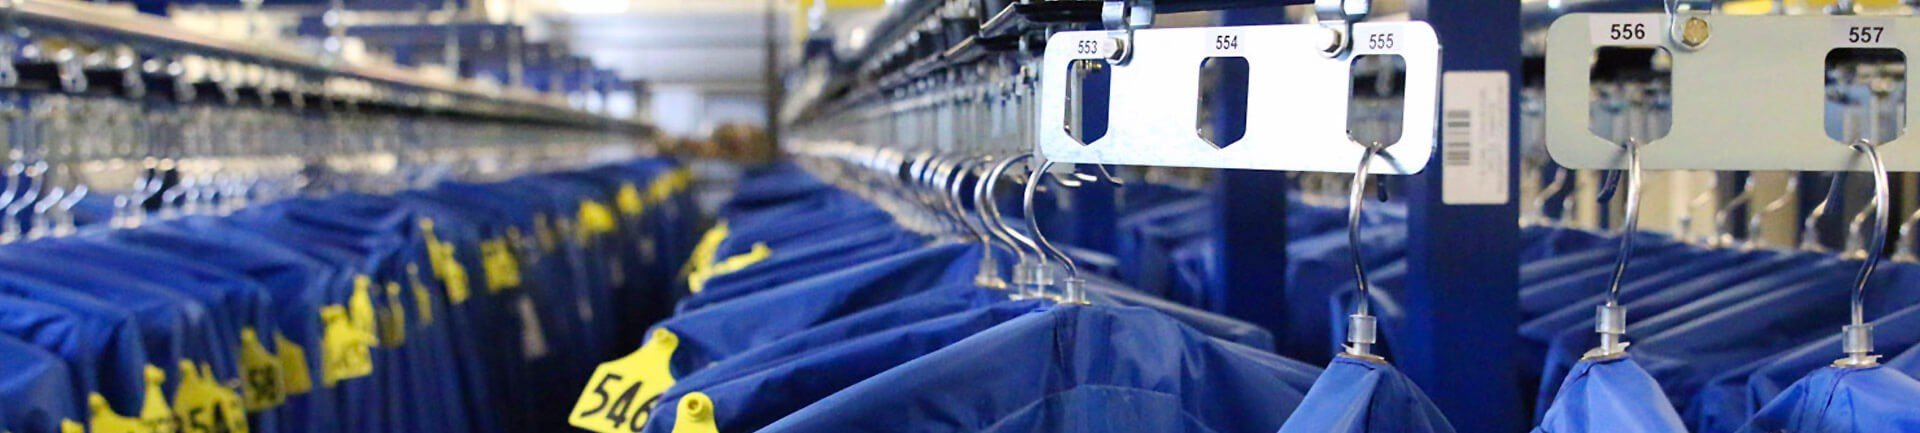 Garment handling conveyor systems for uniforms, inmate property and coat checks